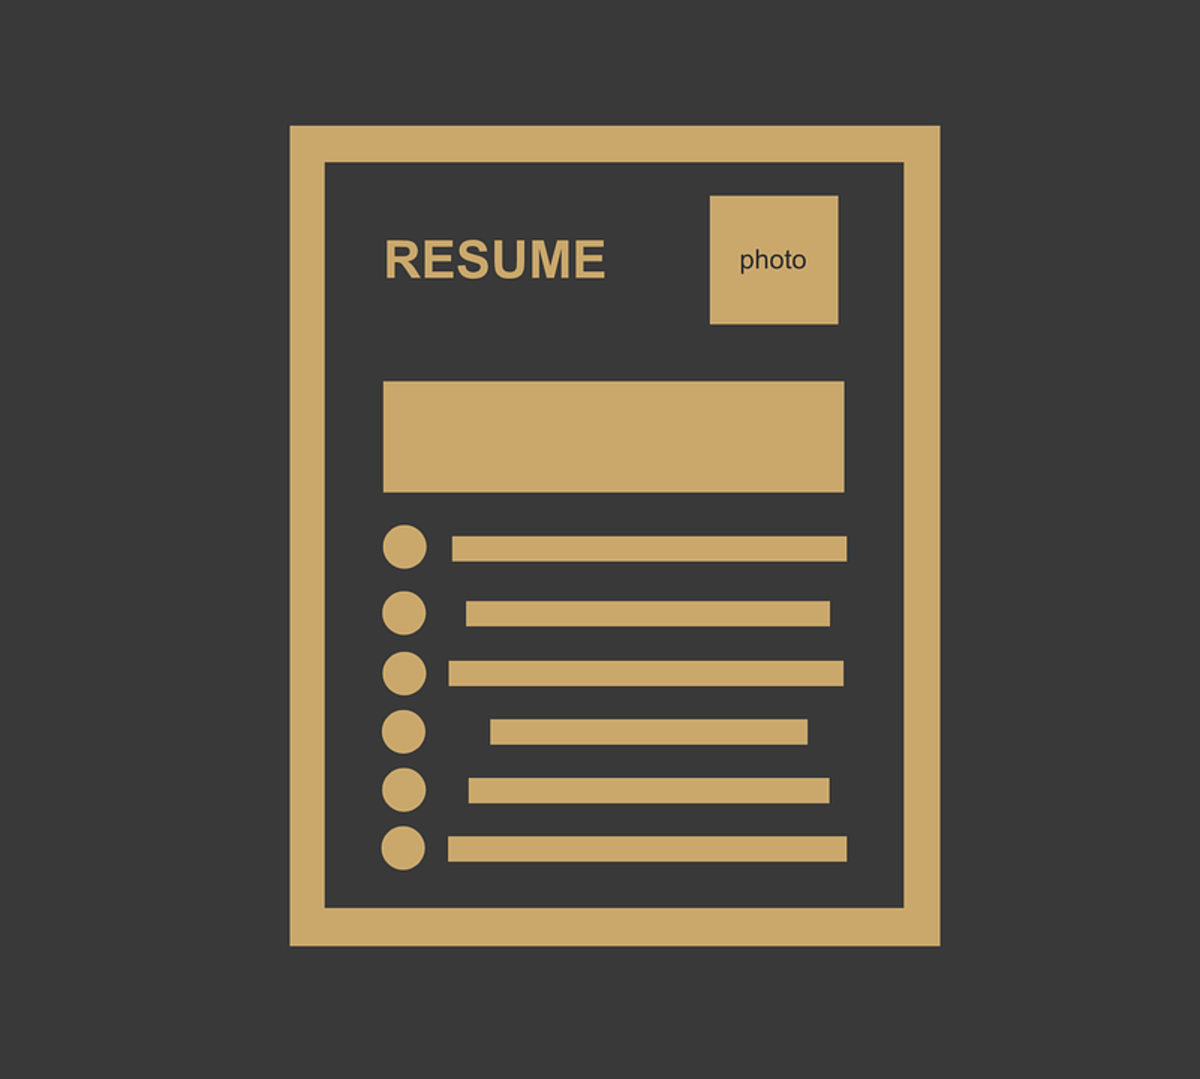 There is no need to explain a gap in employment history in a resume or CV.